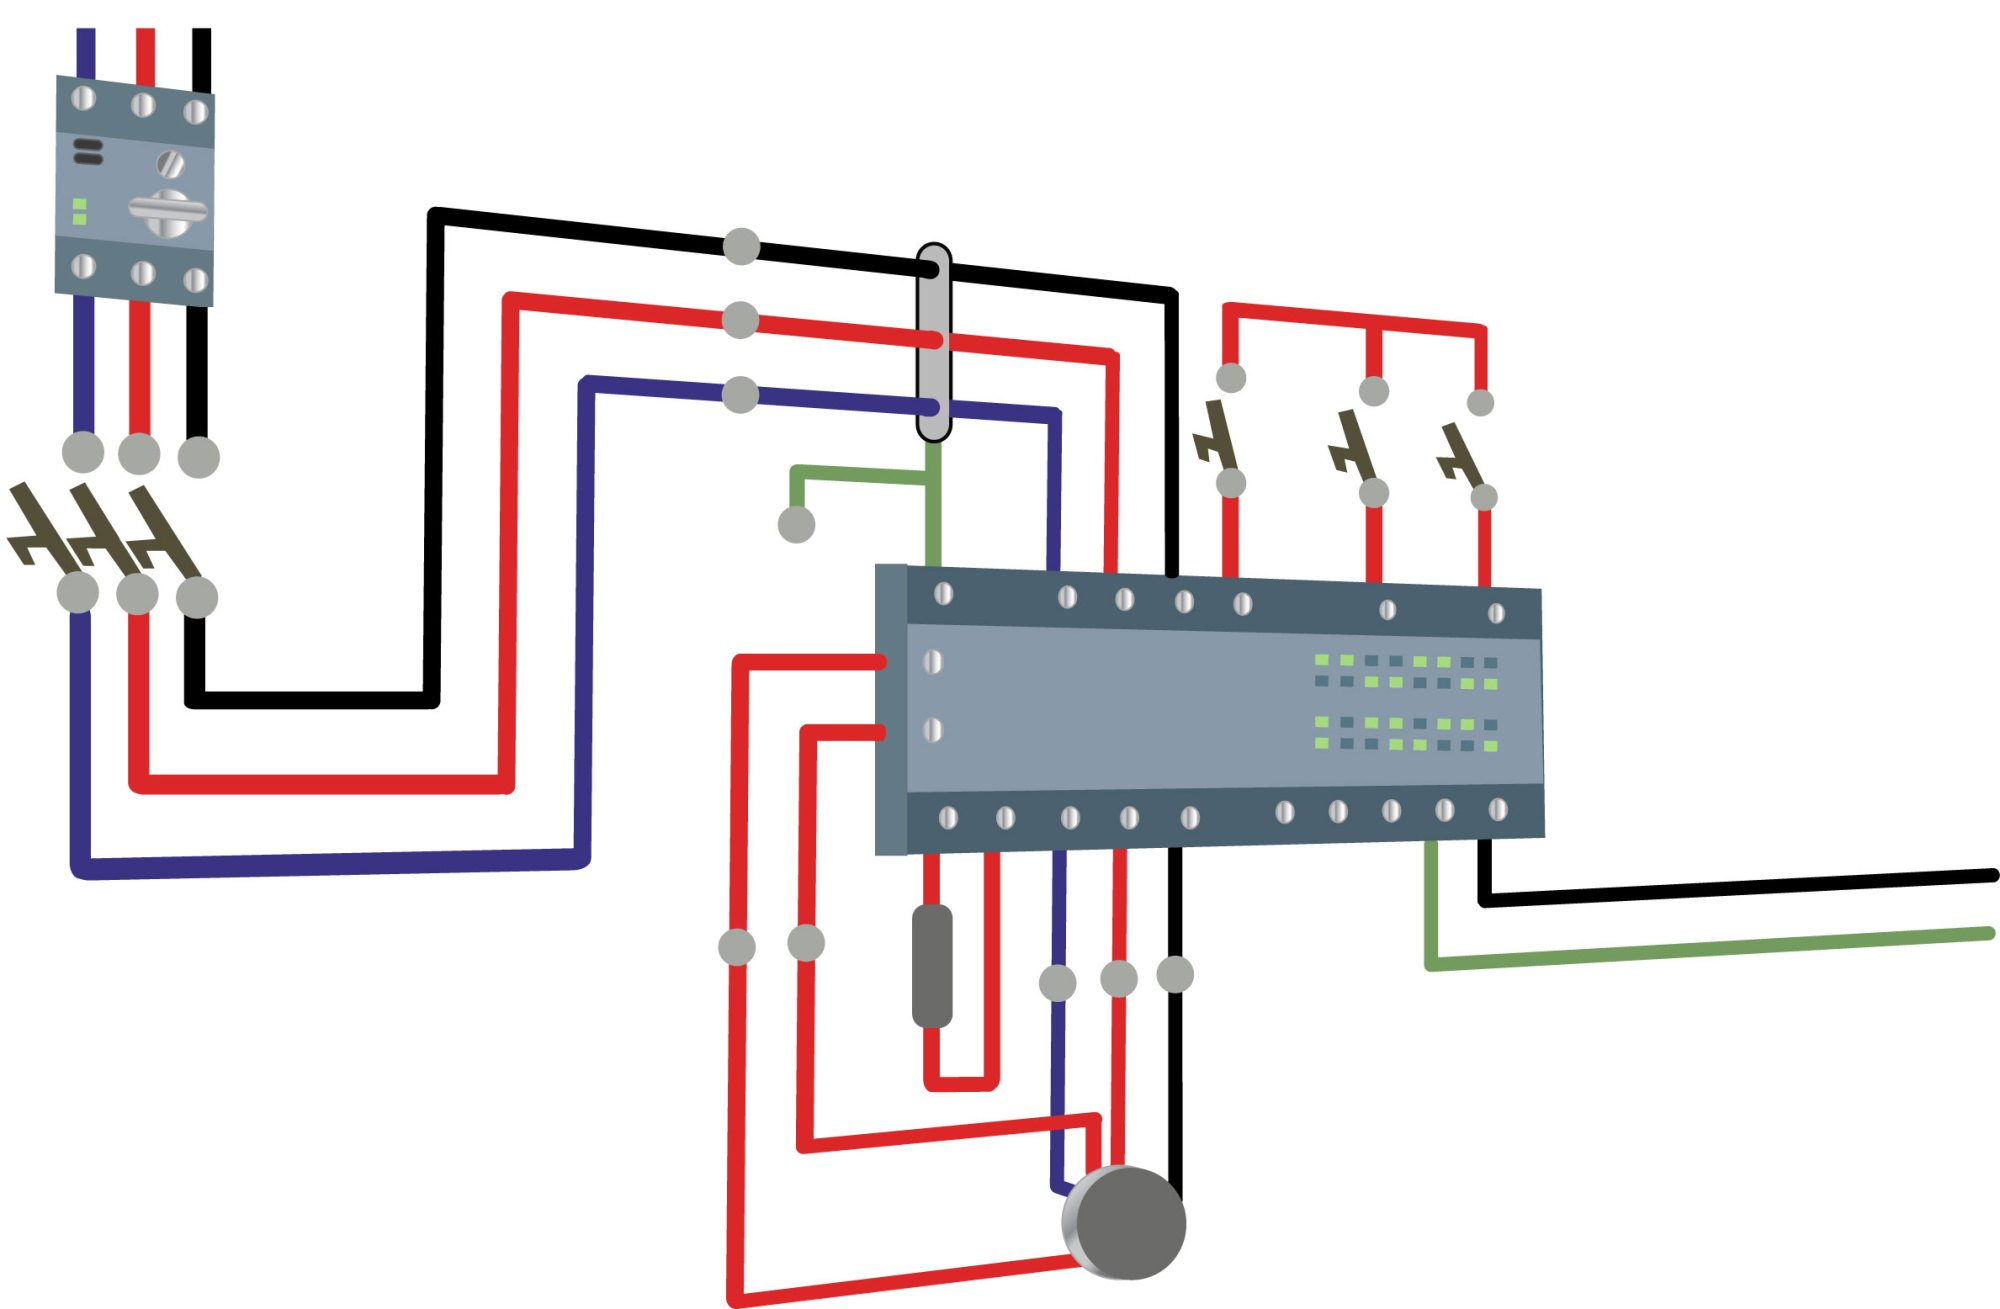 hight resolution of electrical schematic course wiring diagram blog autocad electrical training institute autocad software course electrical schematic course